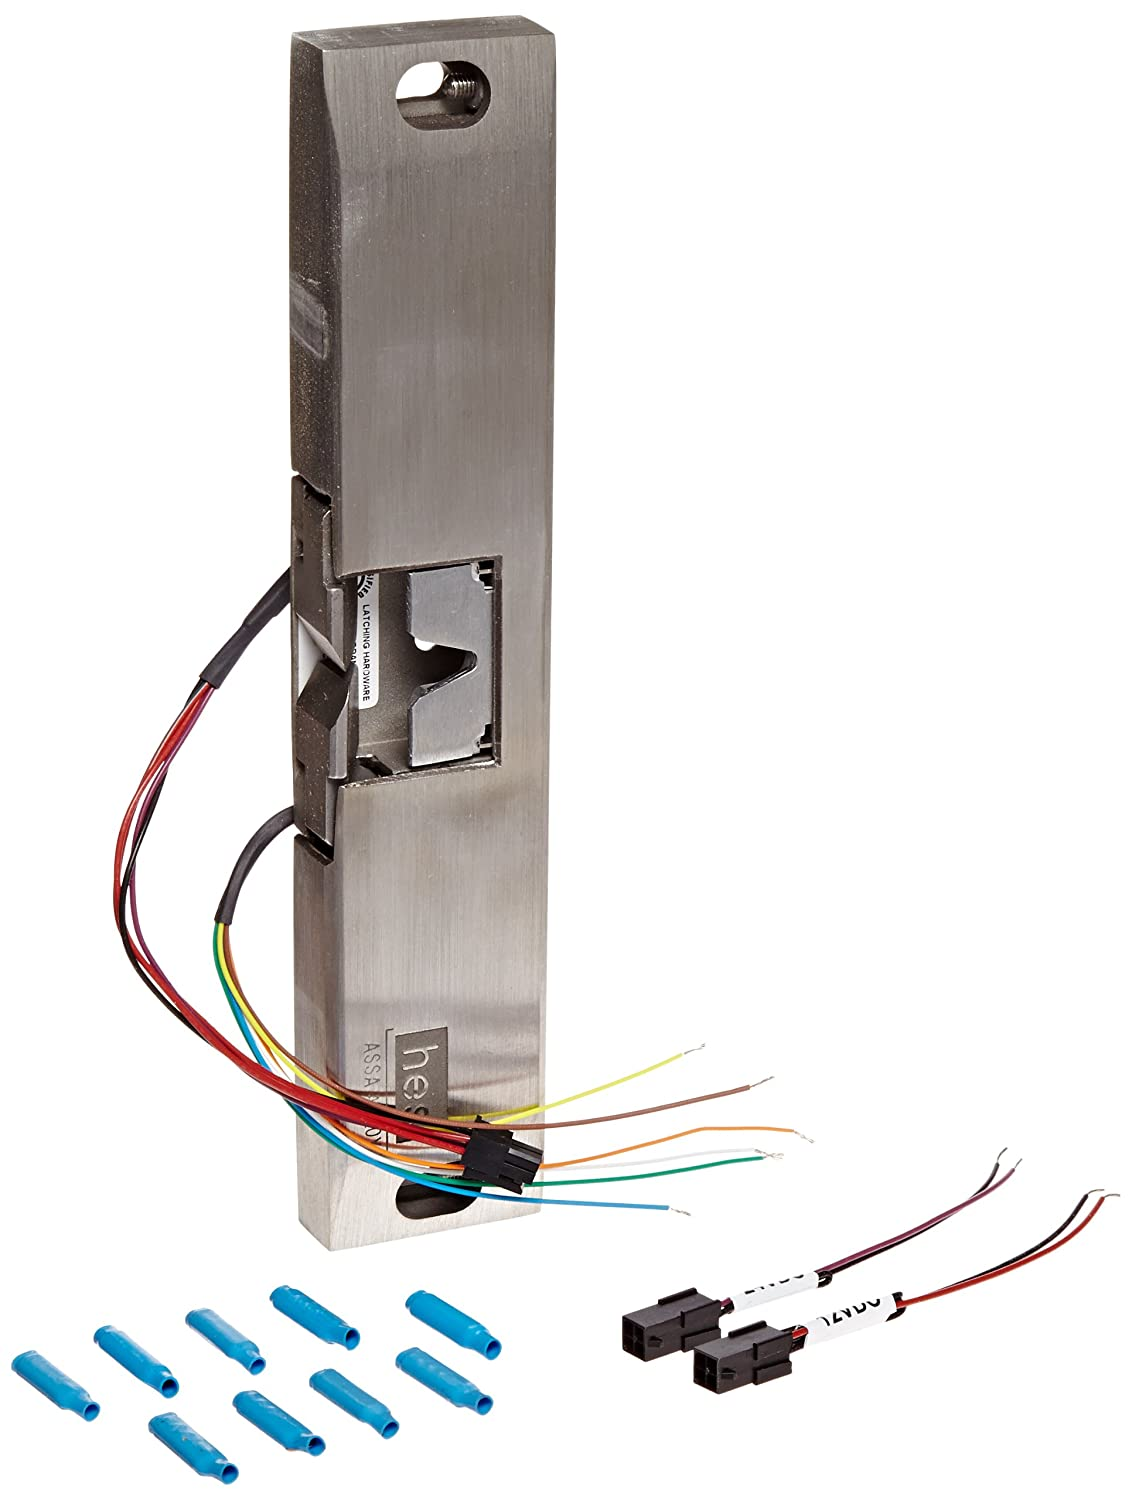 Hes 9600 series stainless steel fire rated surface mounted on hes 5000 wiring diagram HES 5000 Door Strike hes 5000c pdf